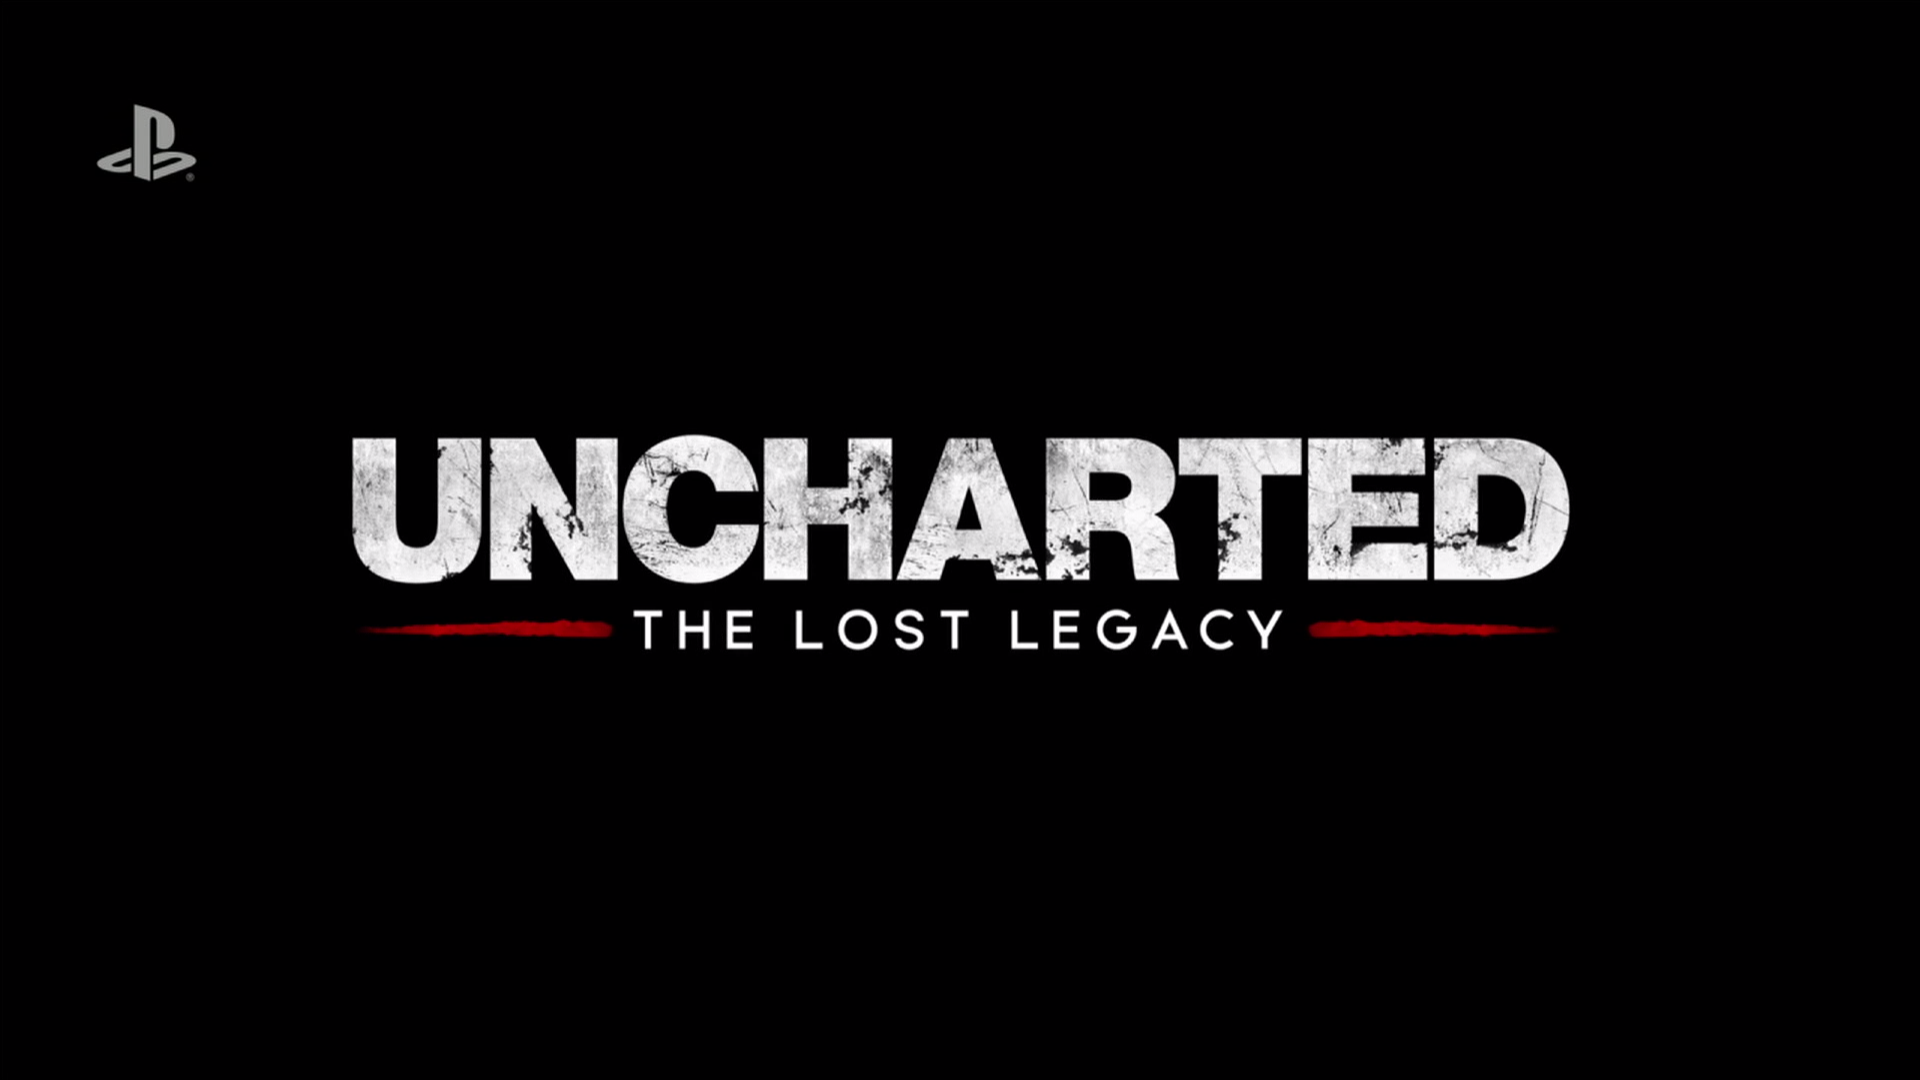 New Uncharted Game Announced at E3